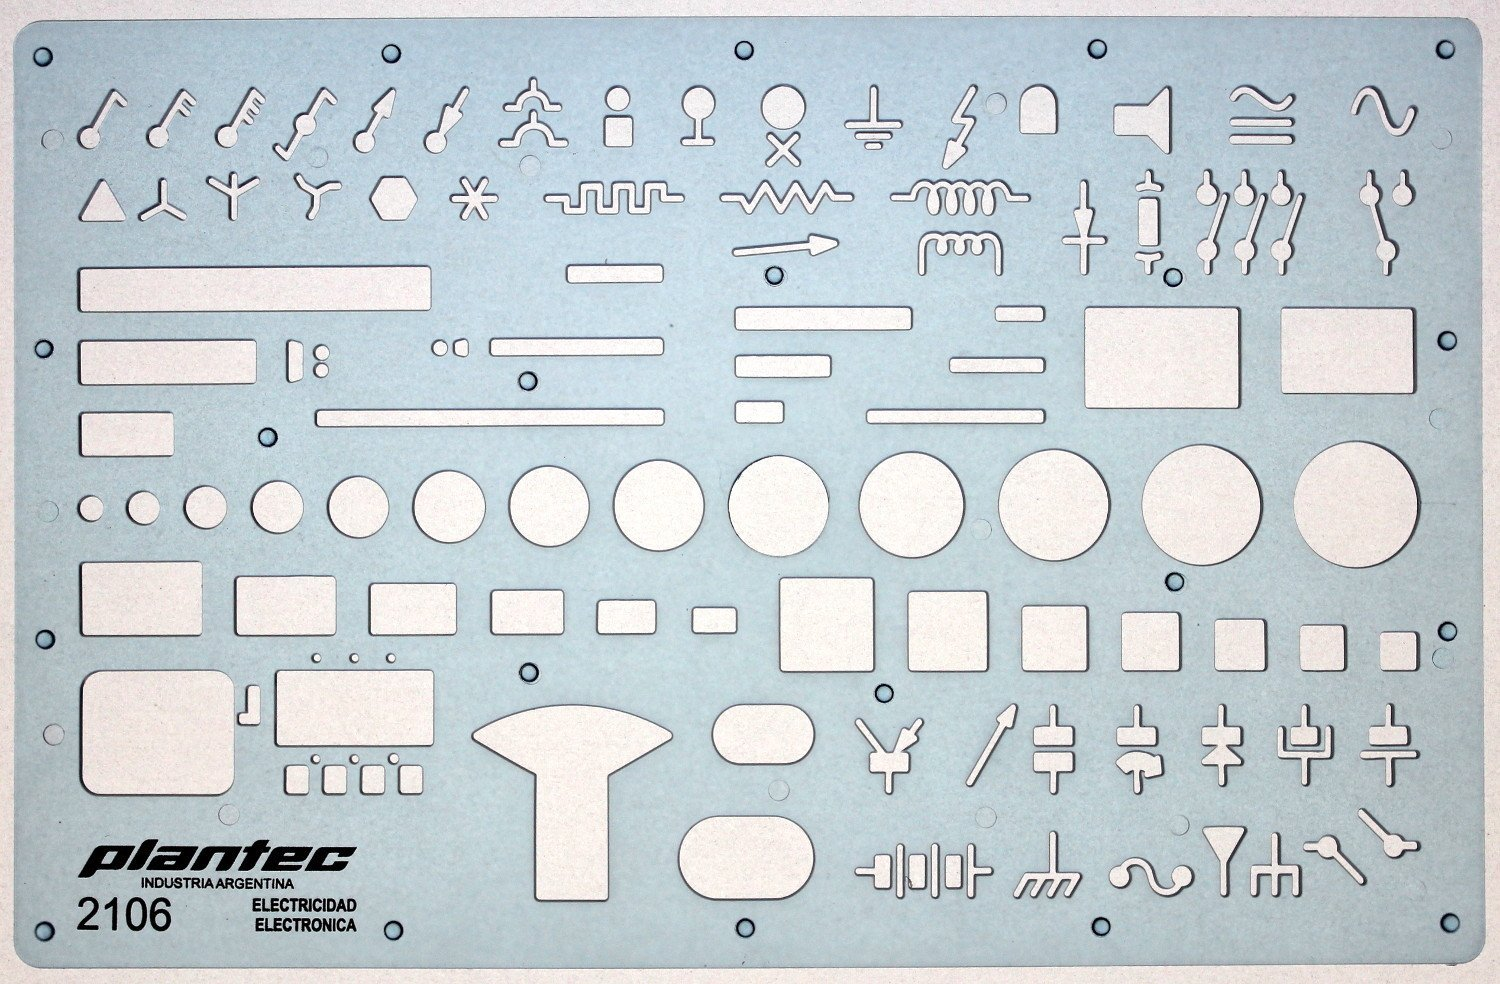 hight resolution of electrical and electronic installation symbols drawing template stencil engineering drafting supplies layout plan schematic